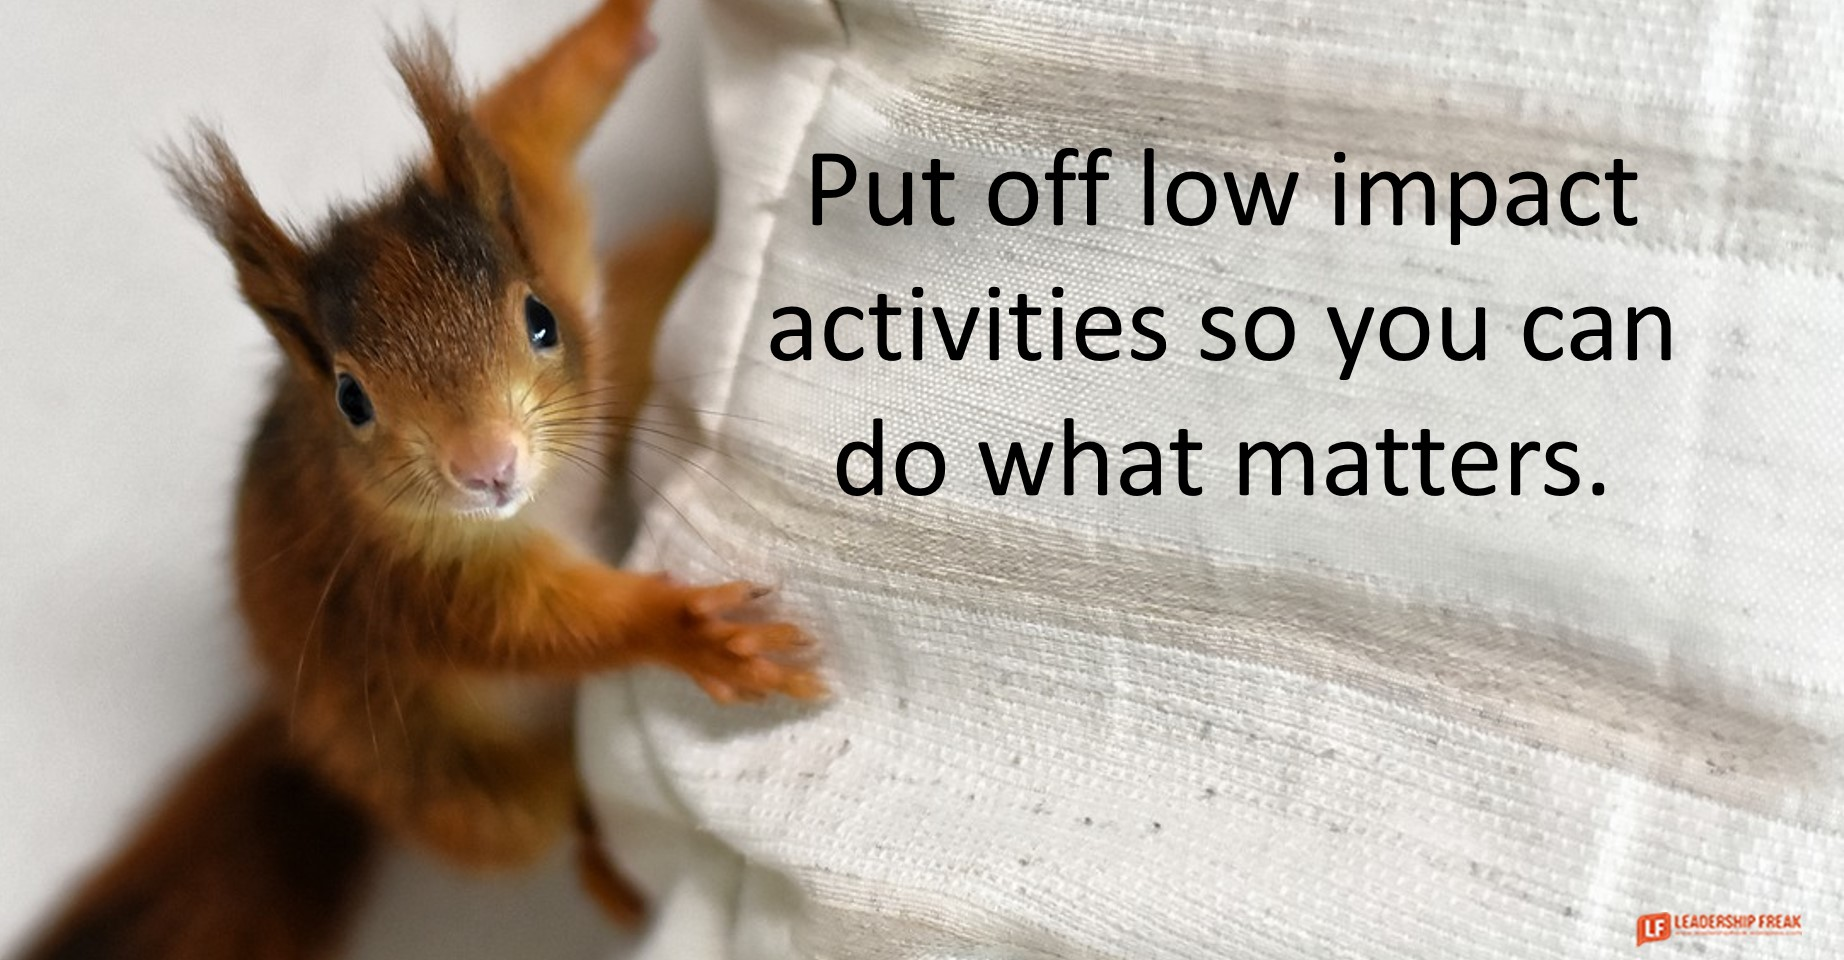 Squirrel  Put off low impact activities so you can do what matters.